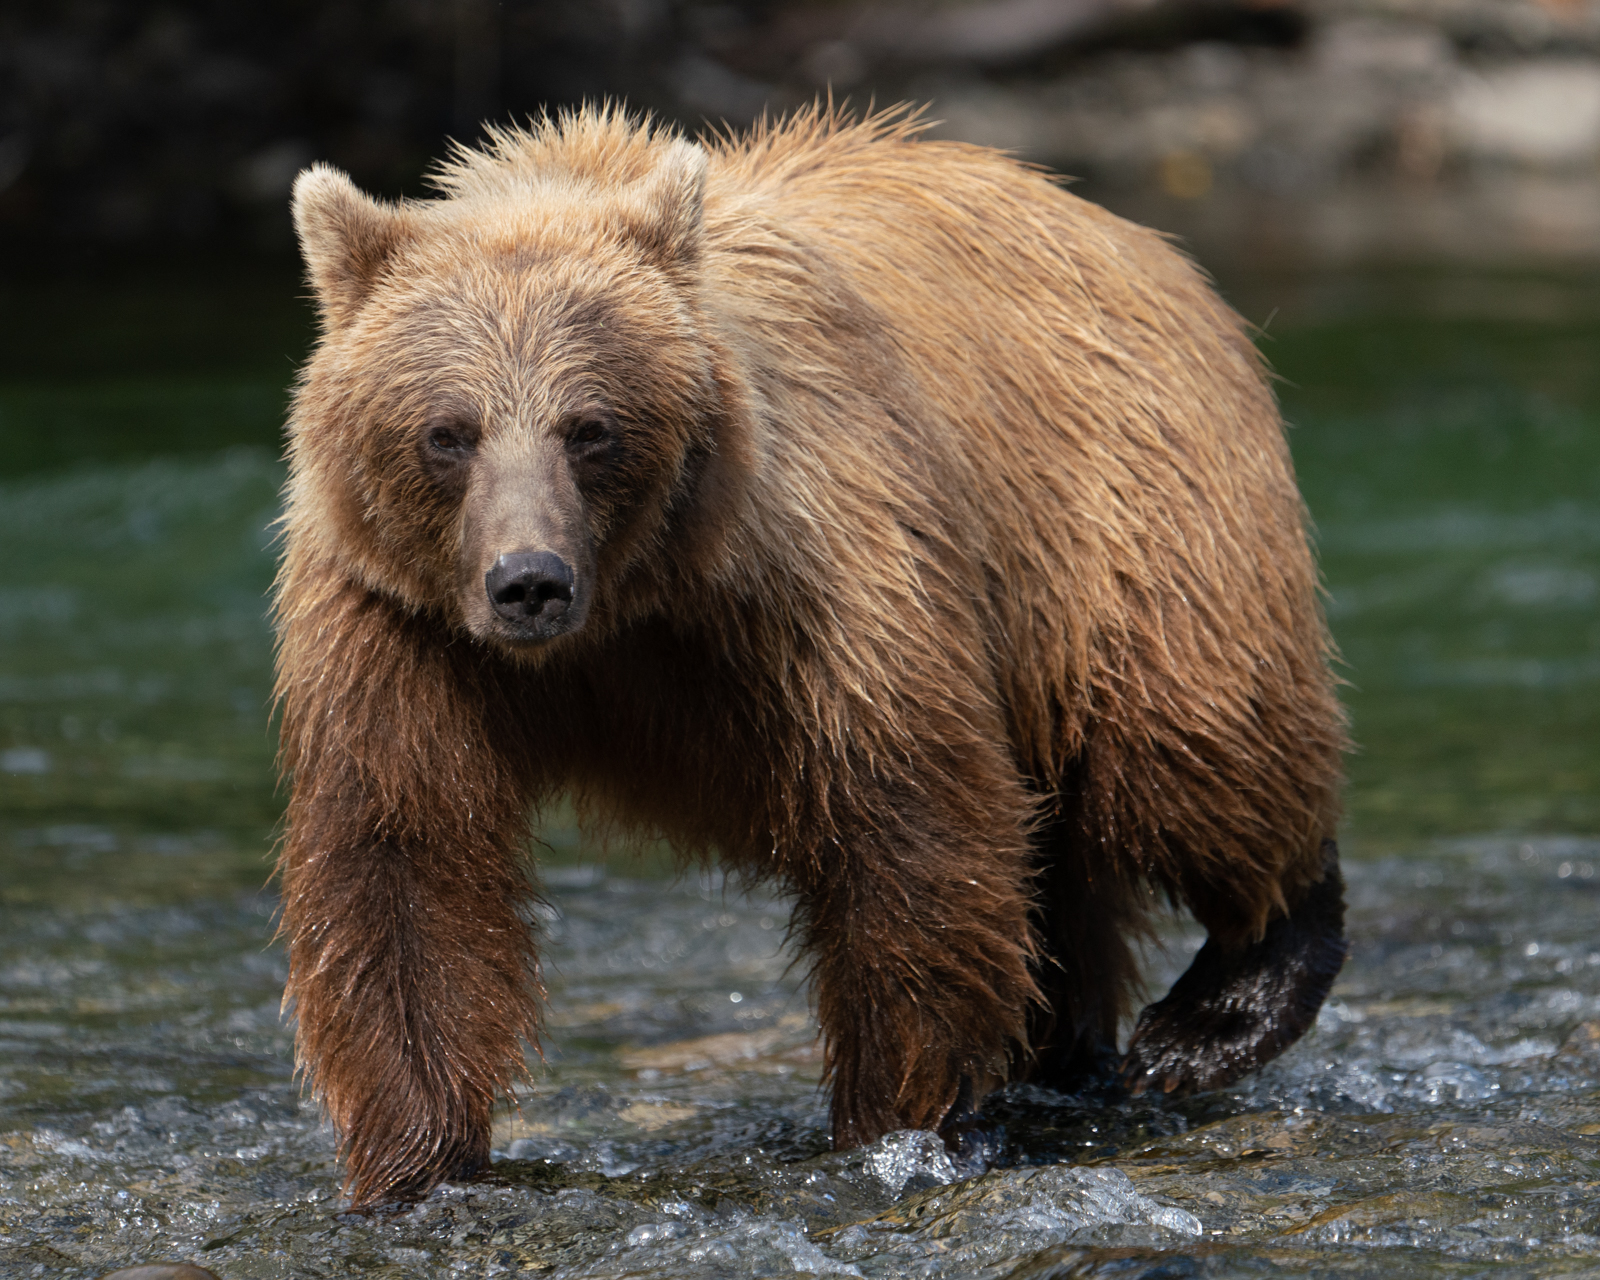 BC-Grizzly-Bears-00415.jpg